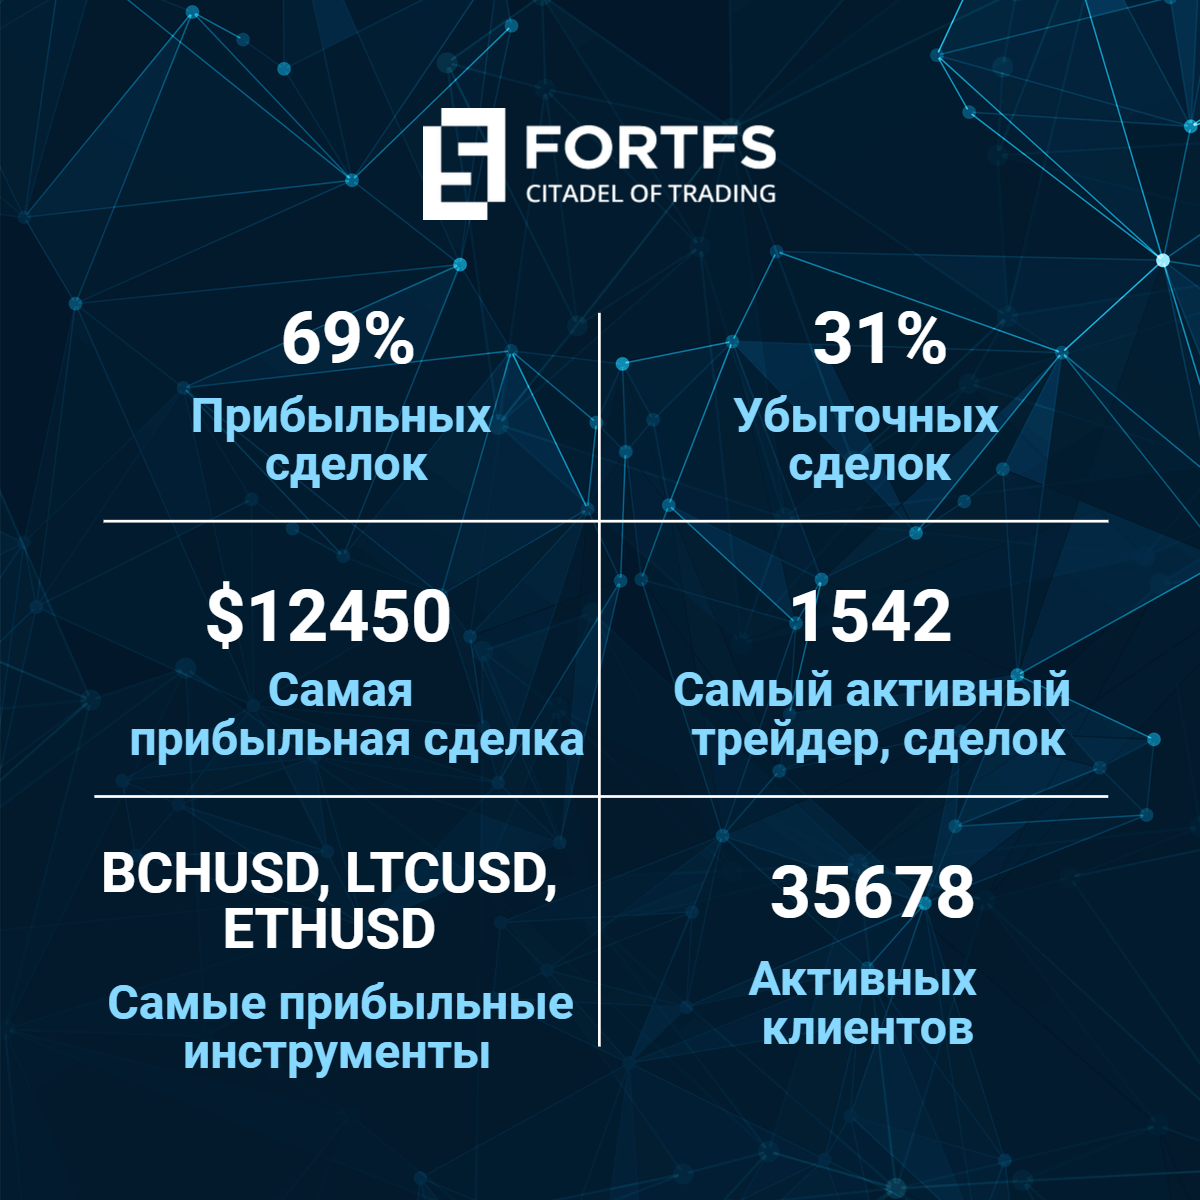 Fort-Financial-Service-1